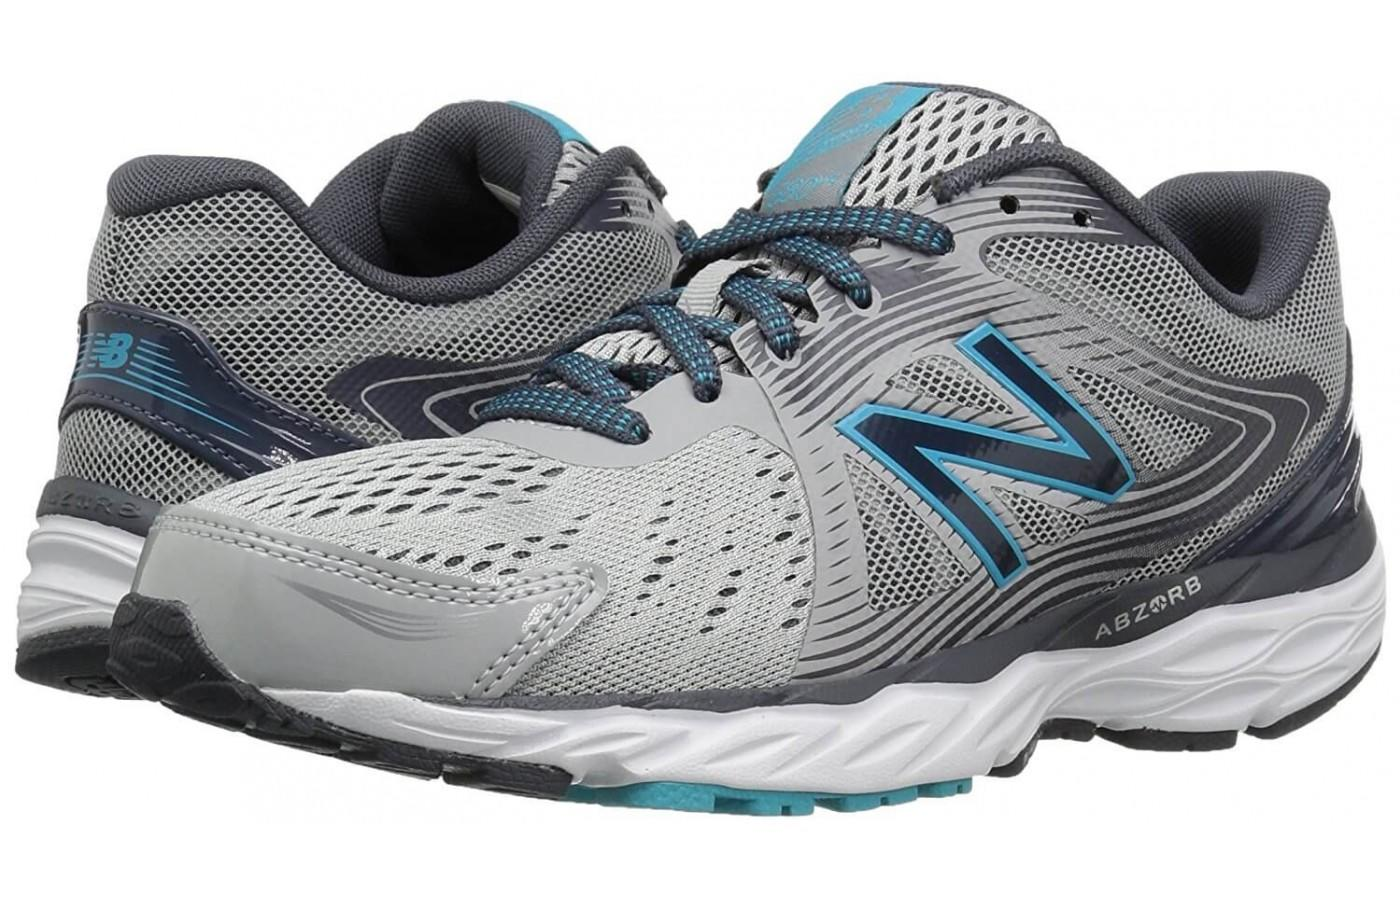 The New Balance 680V4 features a 12mm drop